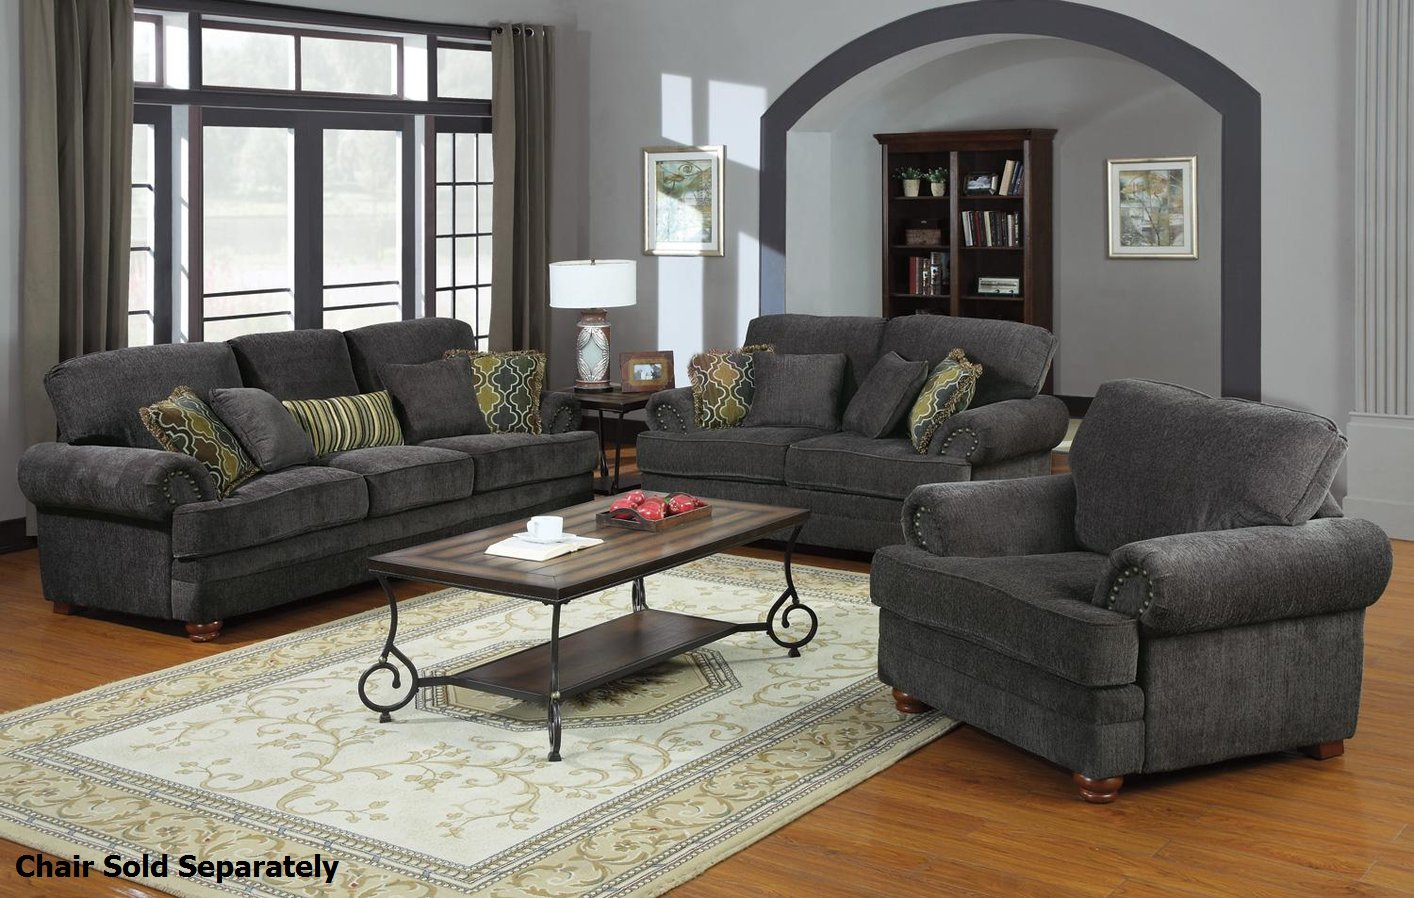 sofa and loveseat set Colton Grey Fabric Sofa and Loveseat Set   Steal A Sofa Furniture  sofa and loveseat set